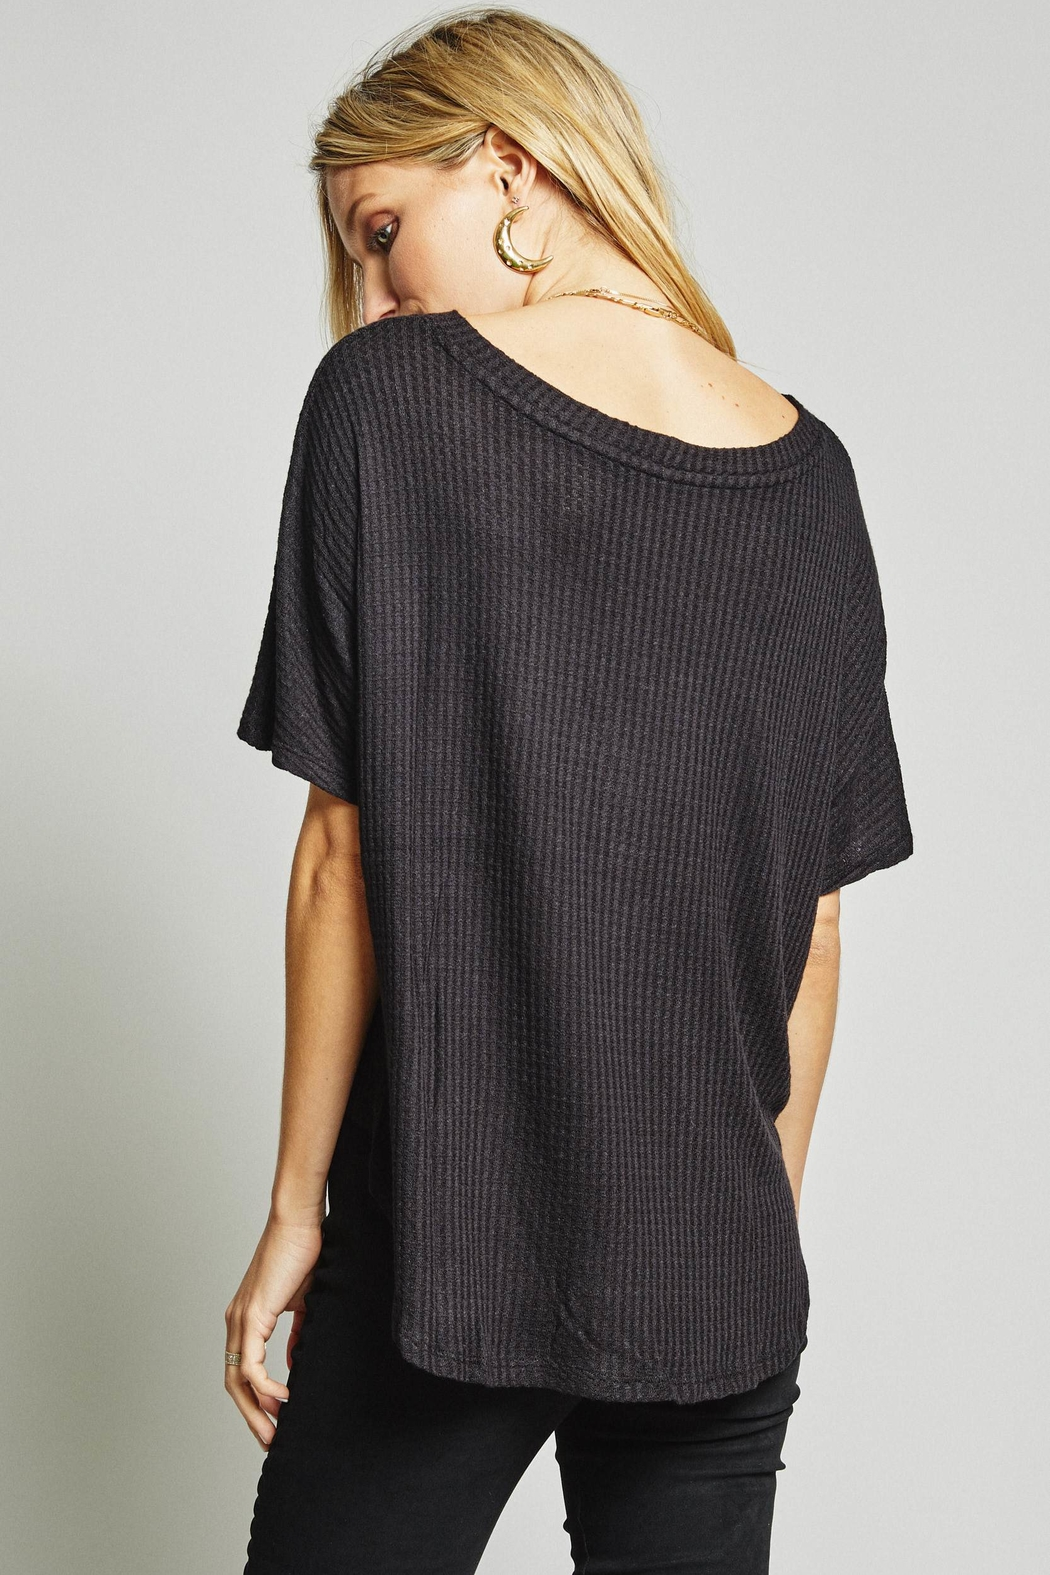 SAGE THE LABEL Joni Top - Side Cropped Image